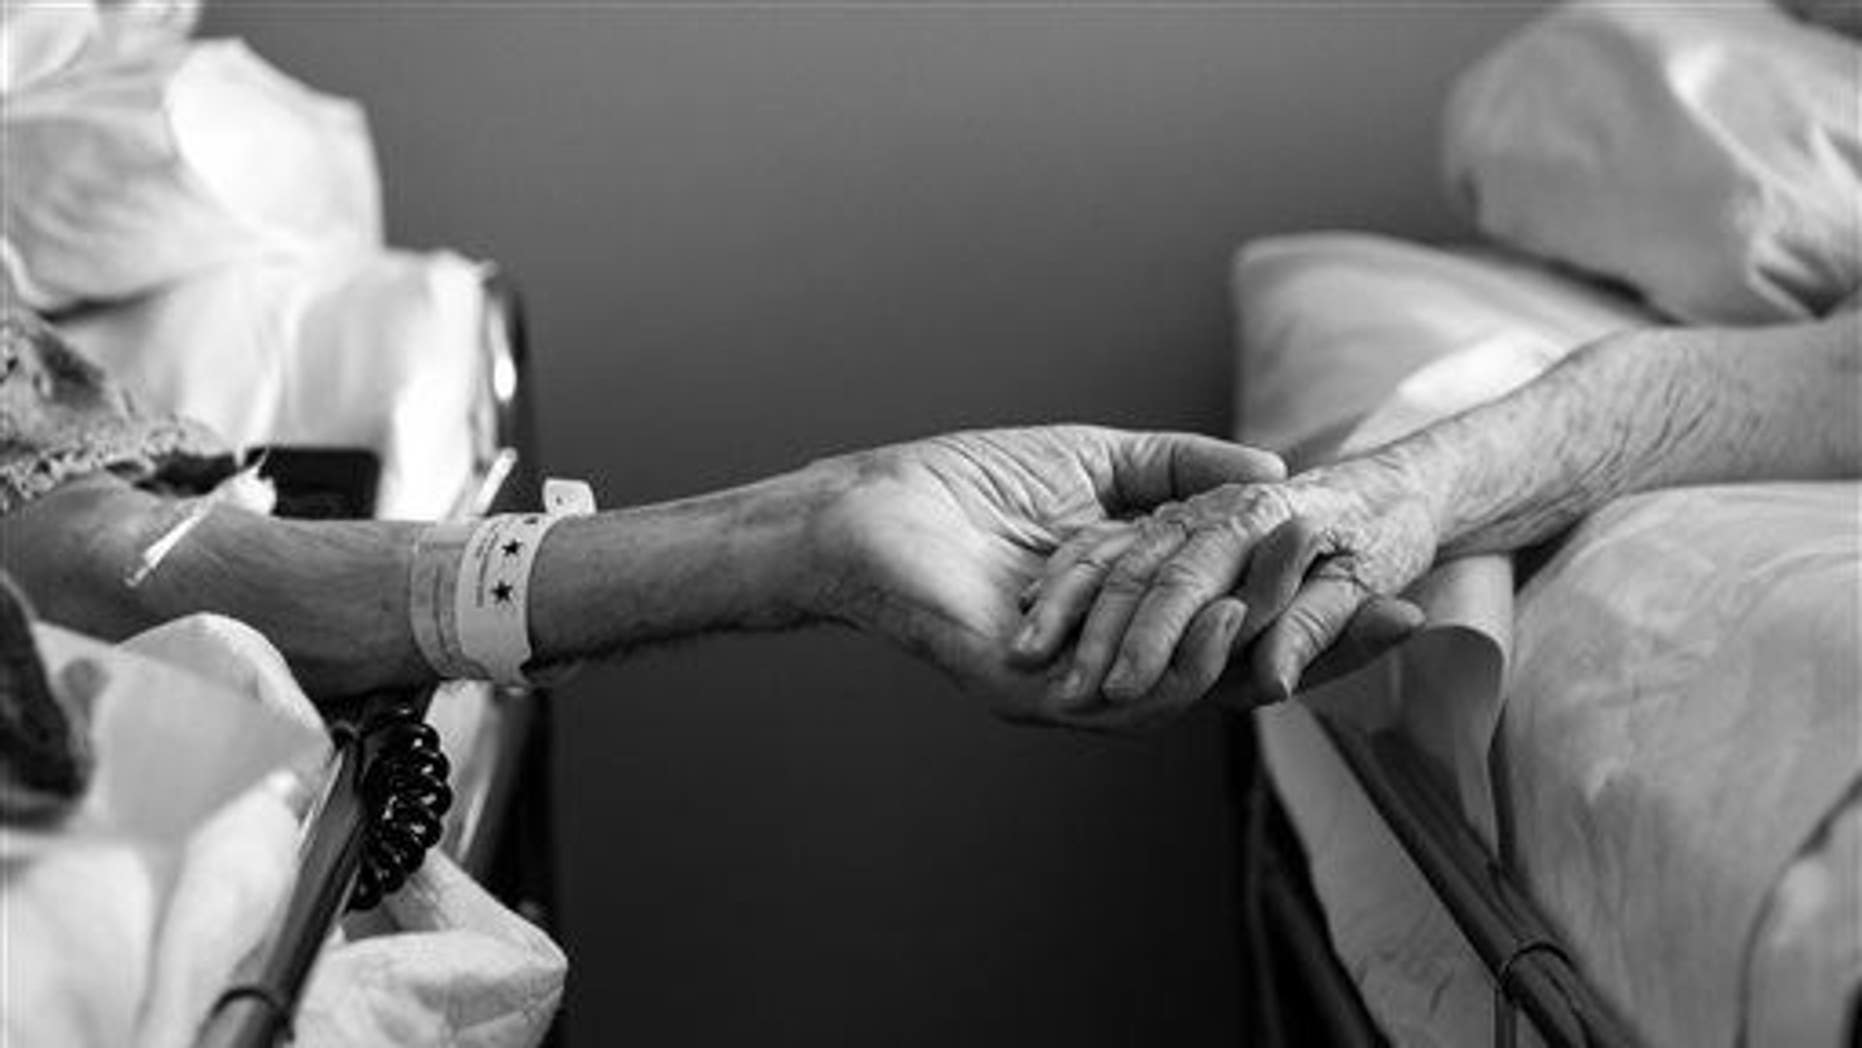 CORRECTS SOURCE TO MELISSA SLOAN INSTEAD OF MELISSA STONE - In this July, 2014 photo provided by their granddaughter, Melissa Sloan, Don Simpson, 90, and his wife Maxine, 87, hold hands from adjoining hospice beds in Sloan's home in Bakersfield, Calif. The couple, married 62 years, died four hours apart July 21, 2014, while lying next to each other, their family said. (AP Photo/Melissa Sloan)